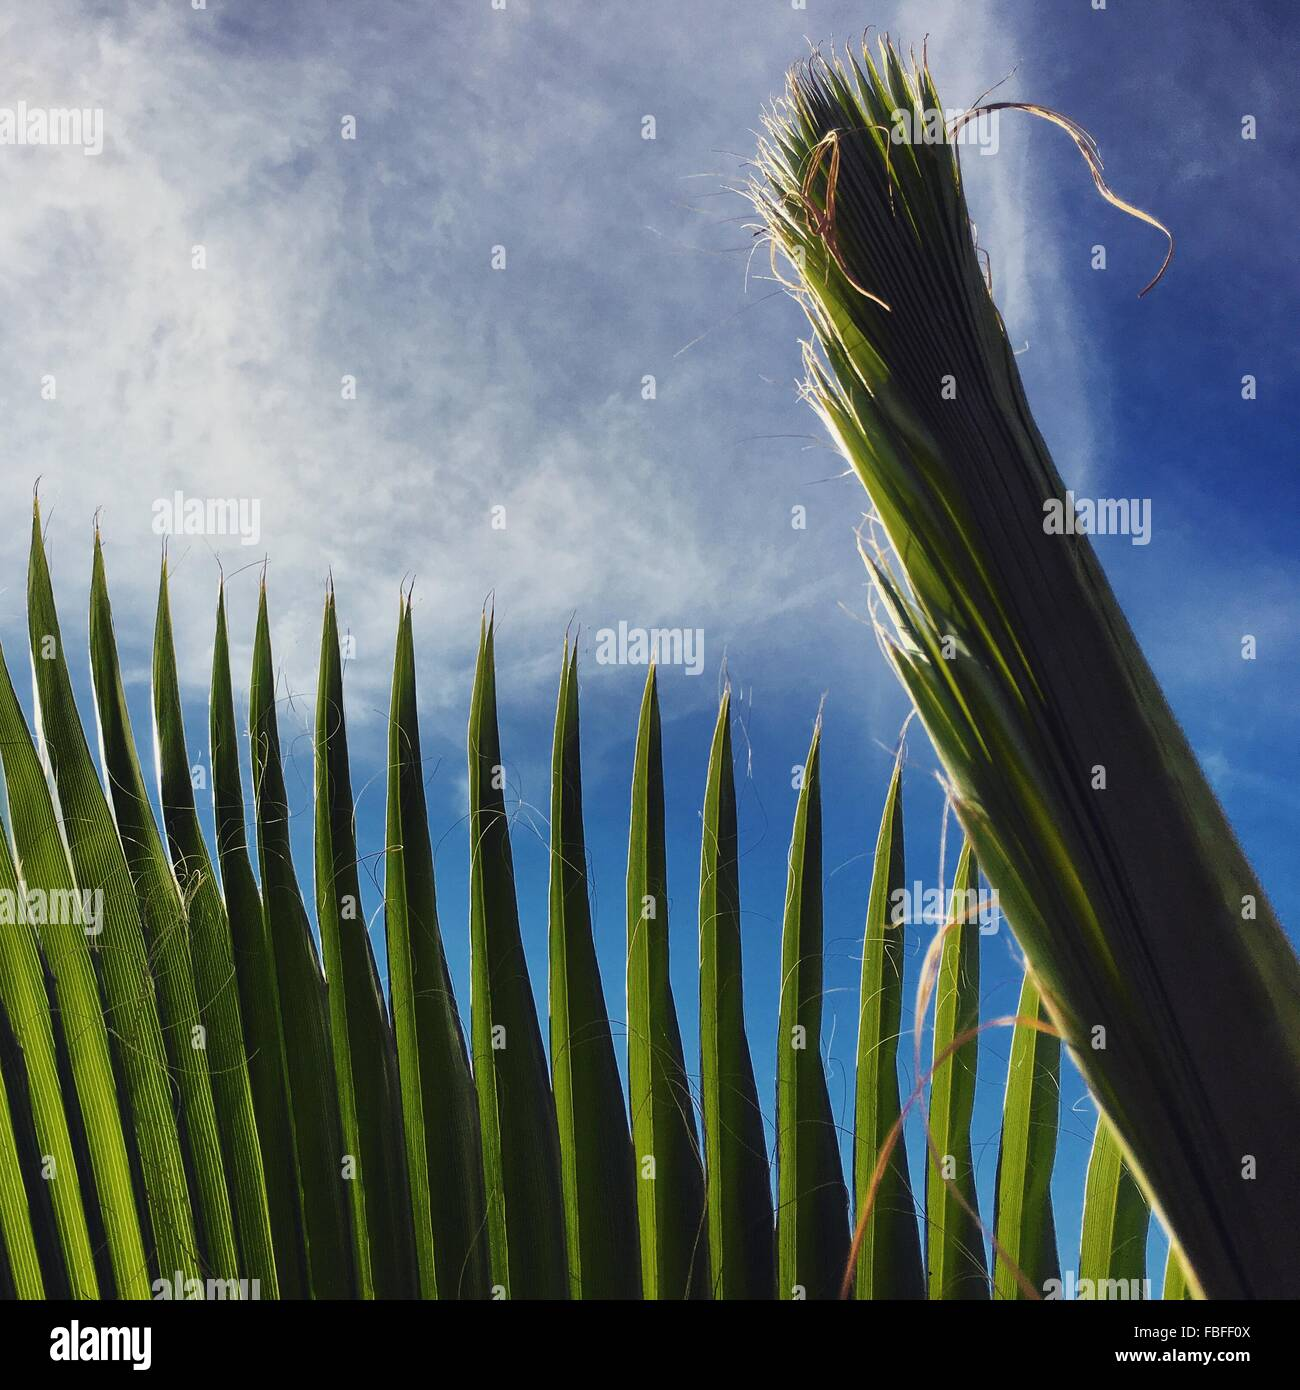 Low Angle View of Plants Against Sky Photo Stock